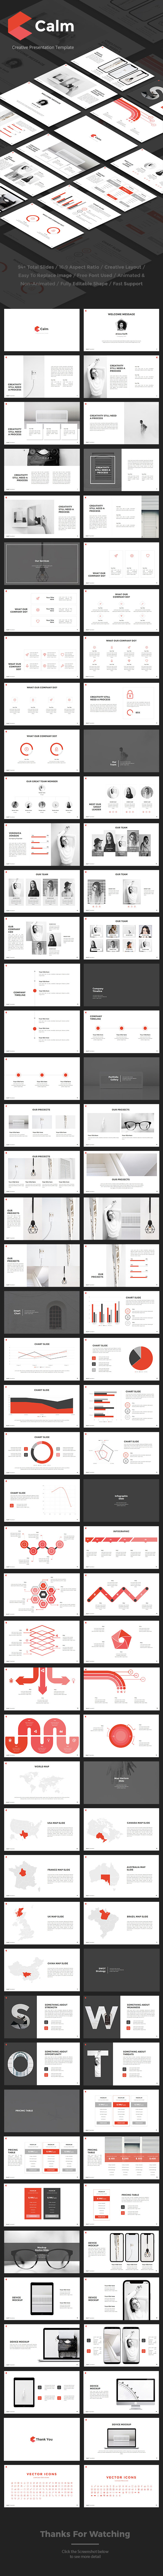 Calm Powerpoint - Business PowerPoint Templates